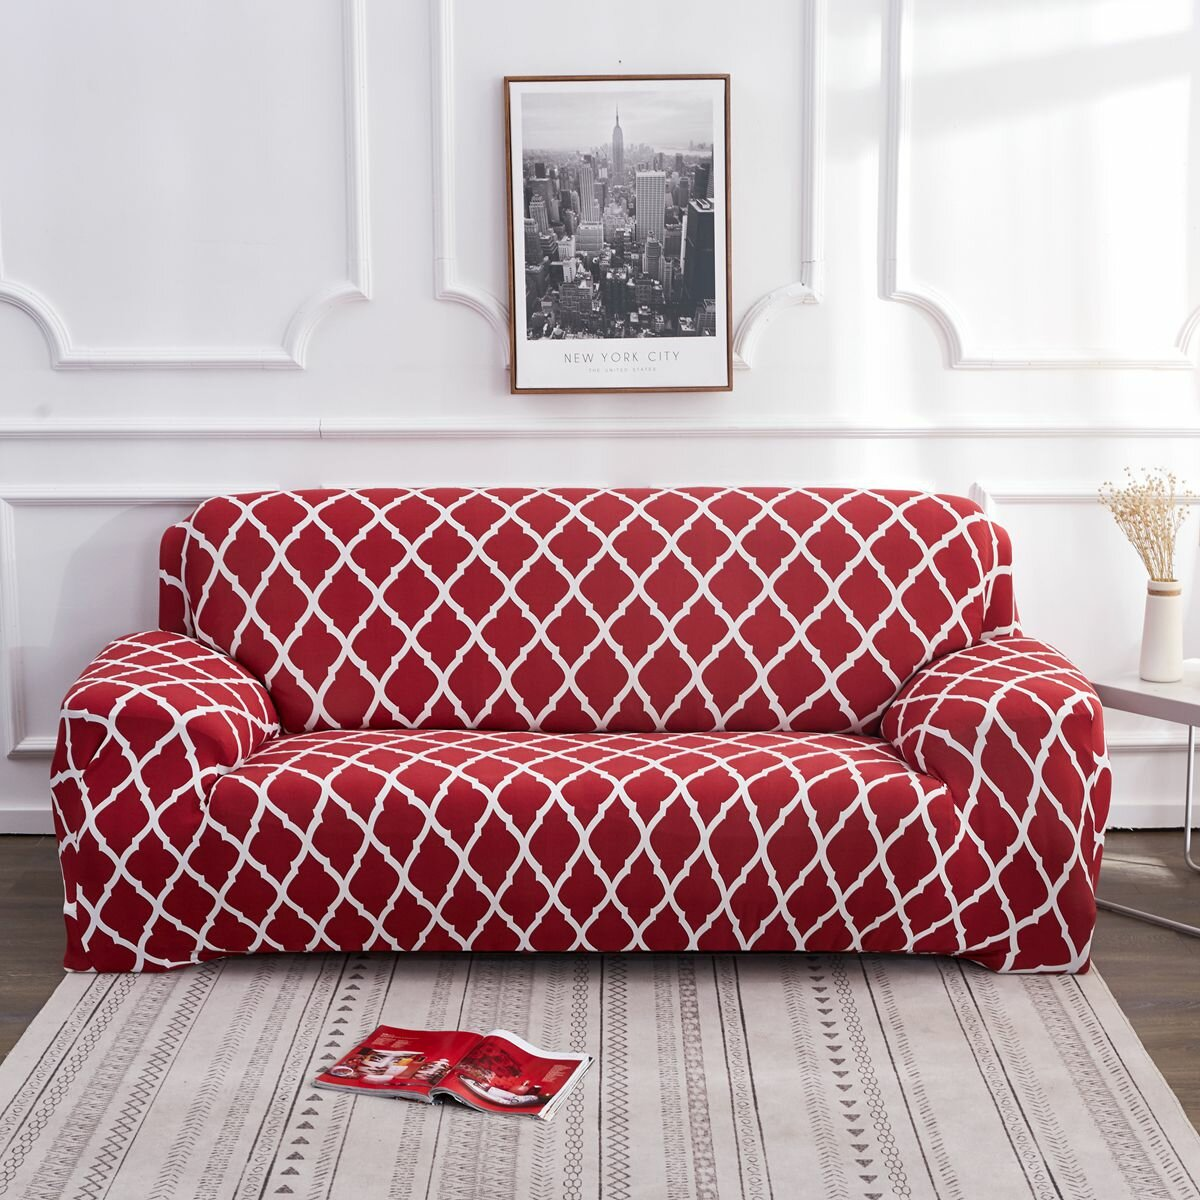 1 2 3 4 Seater Red Elastic Sofa Chair Covers Slipcover Settee Stretch Floral Couch Protector